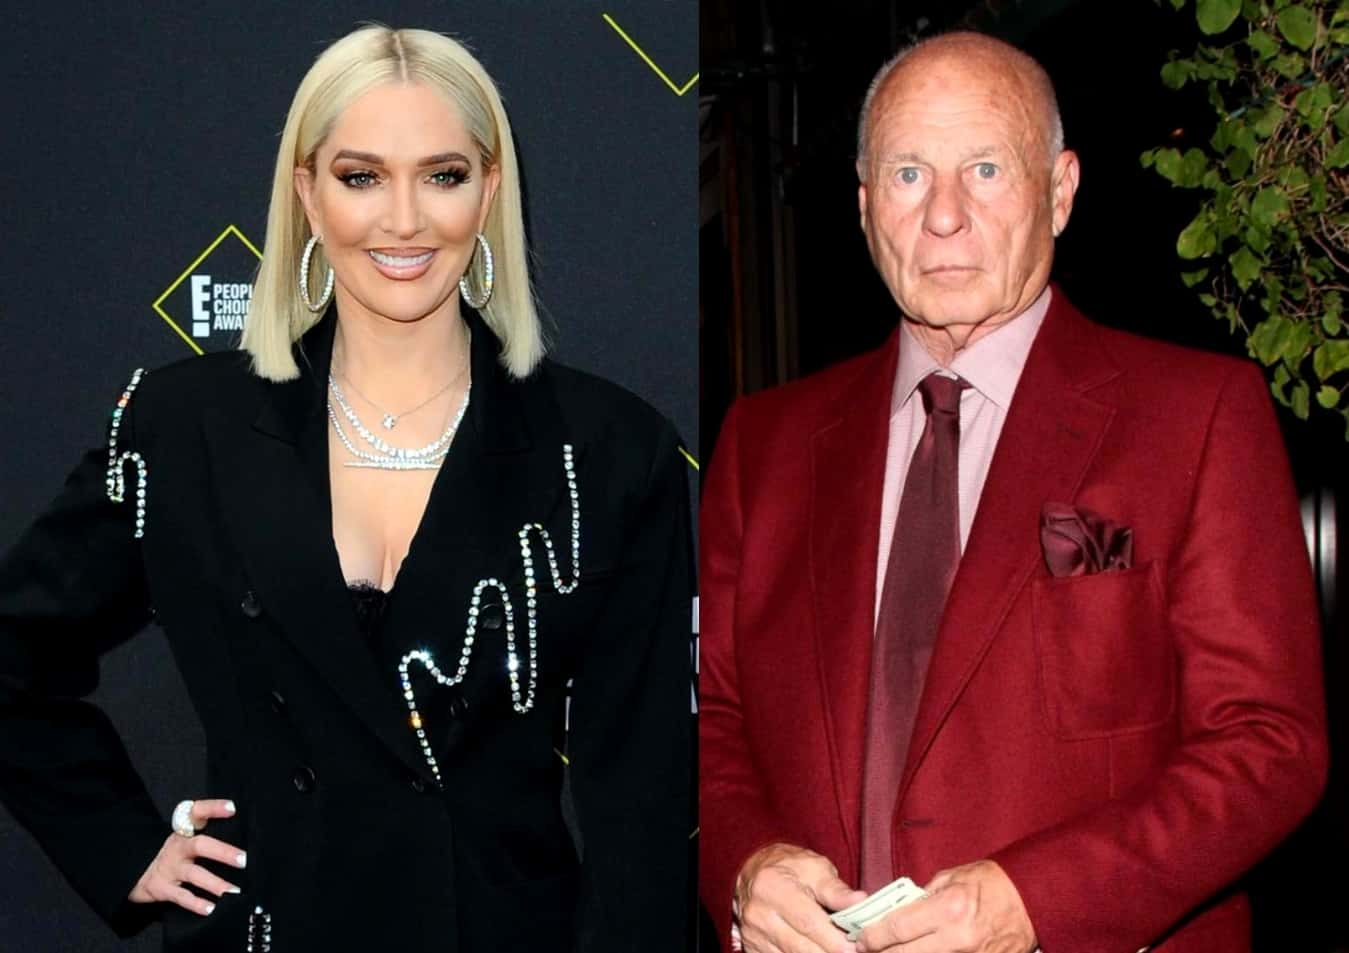 RHOBH's Erika Jayne Attempts to Stop Investigation Into Finances as Trustee Hopes to Hire Attorney to Research Potentially Hidden Money From Thomas Girardi Amid His Bankruptcy Case